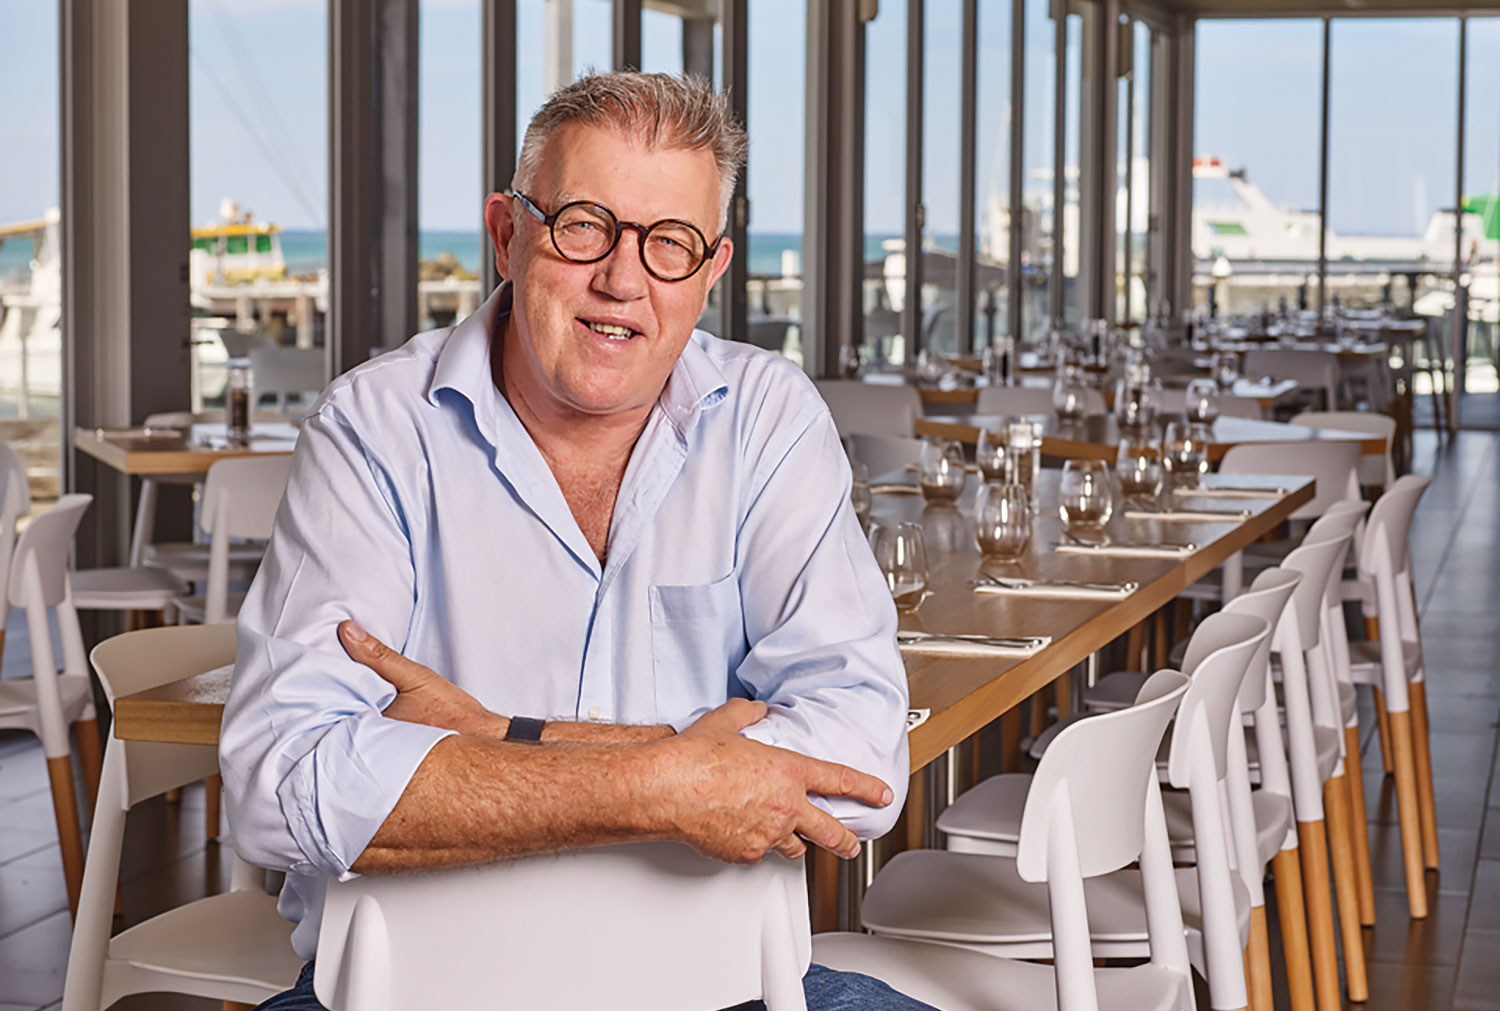 Sorrento culinary King Barry Iddles